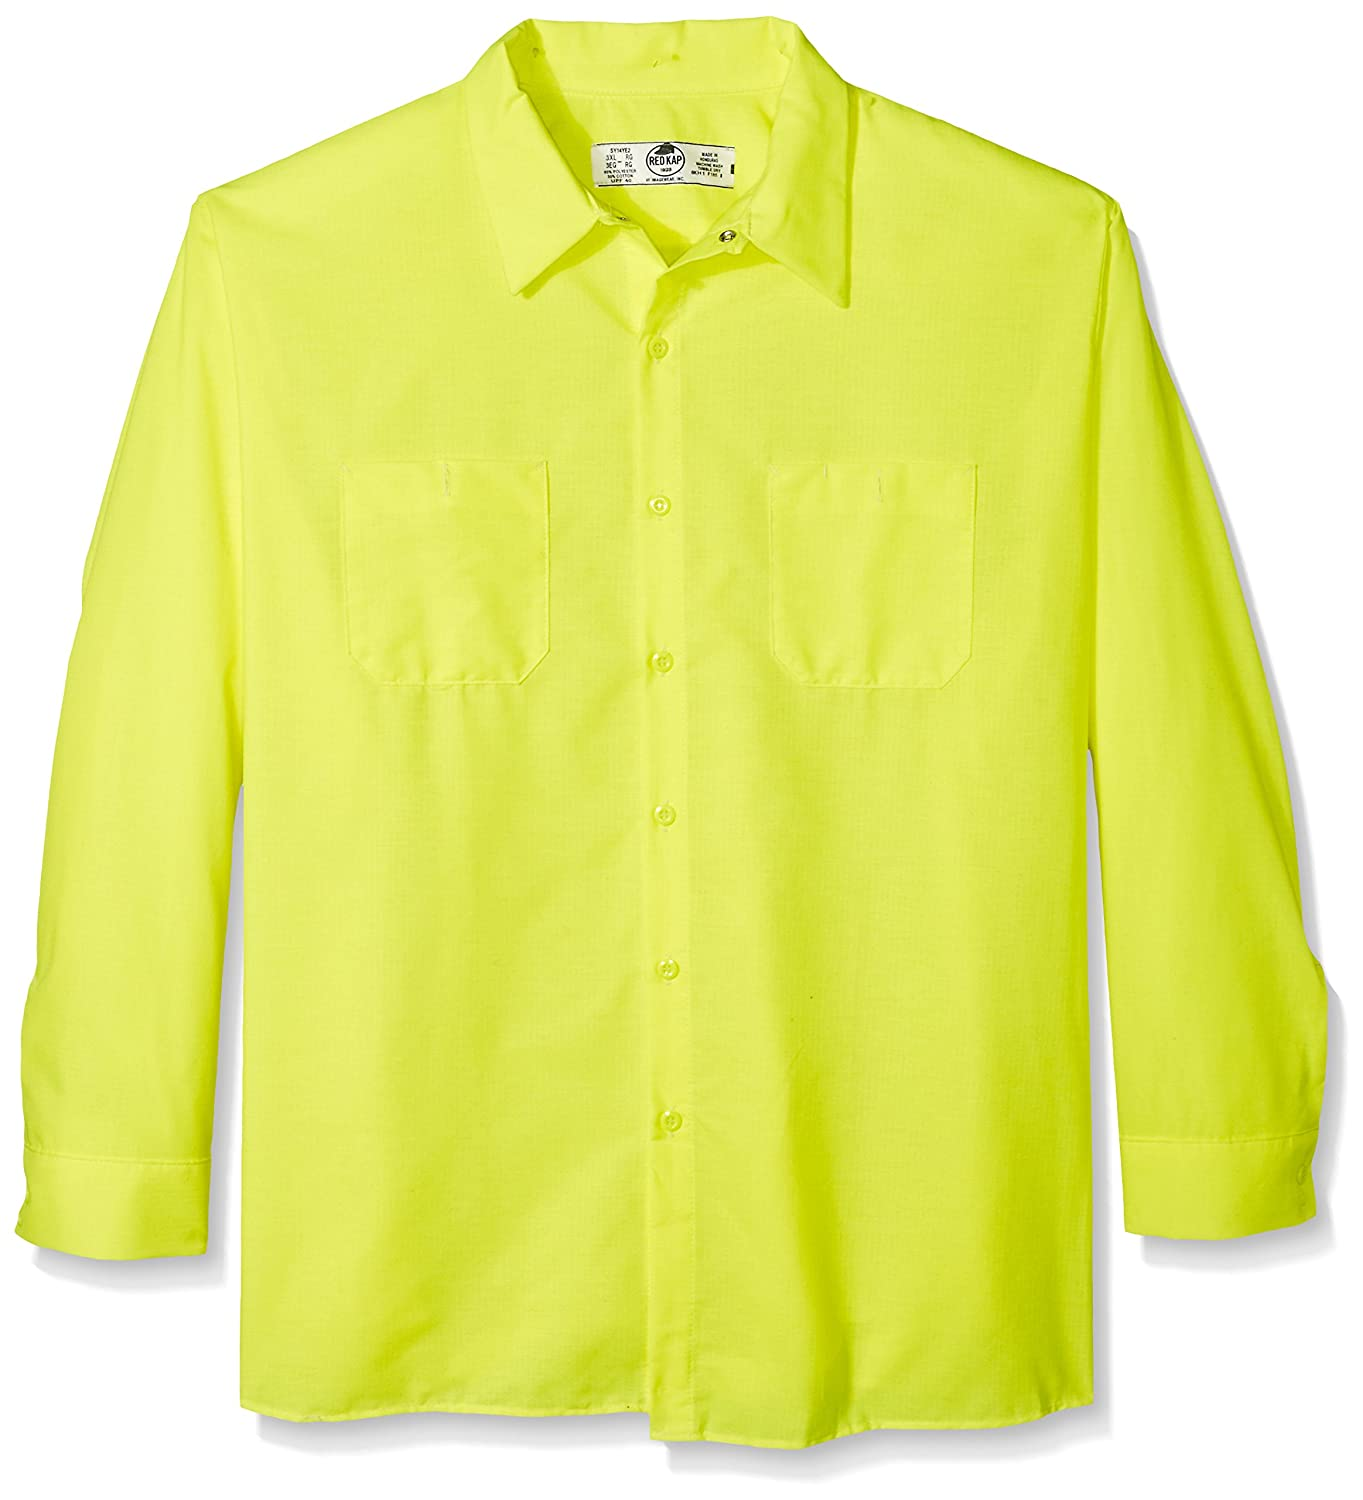 Red Kap SHIRT メンズ B072ZSDCRK X-Large / Tall|Fluorescent Yellow/Green Fluorescent Yellow/Green X-Large / Tall